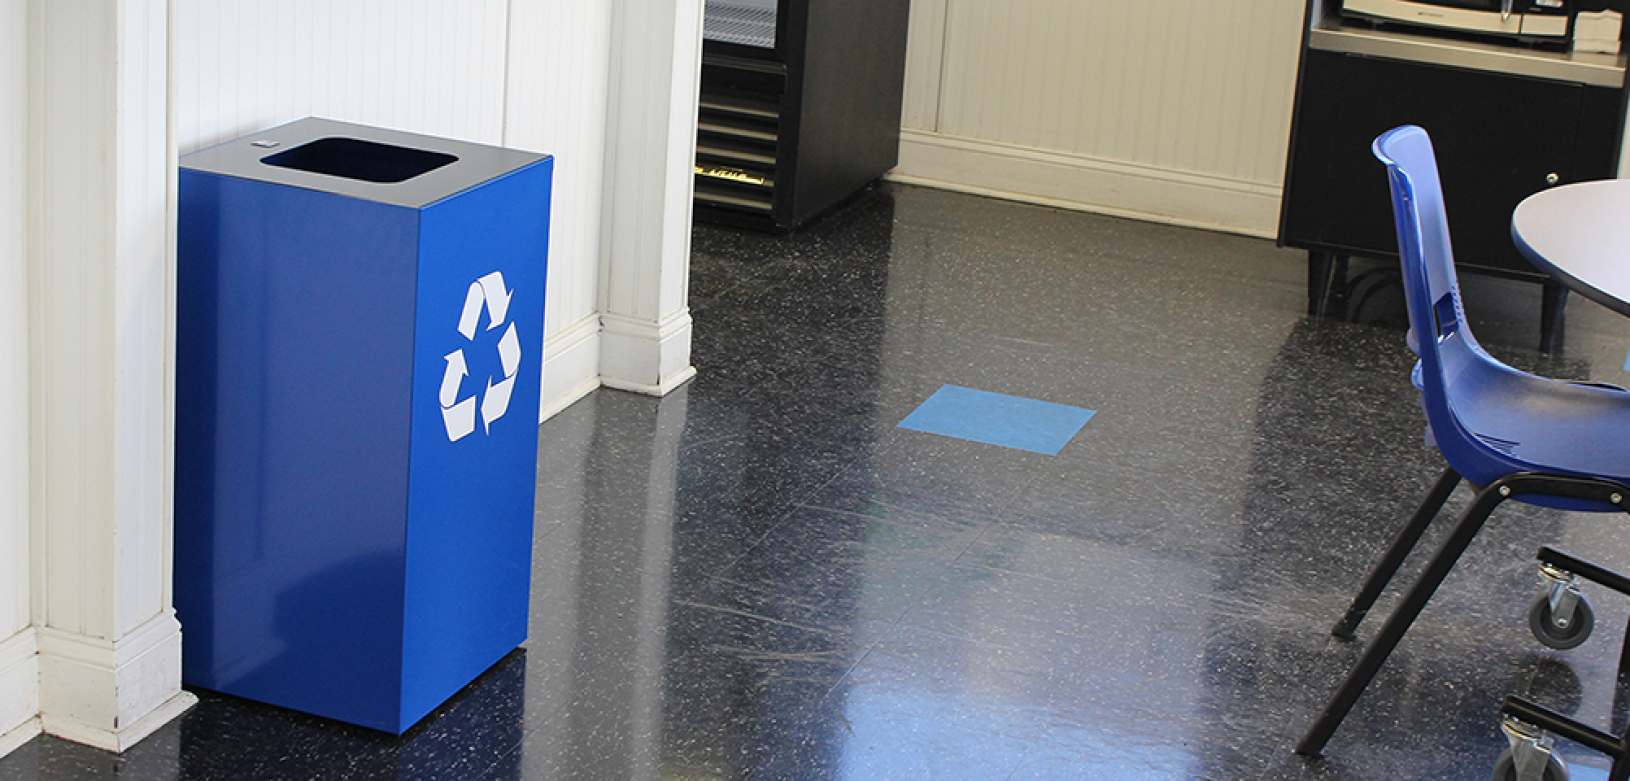 Witt Blue Geocube Recycling Containers with Decal Indoor Environmental